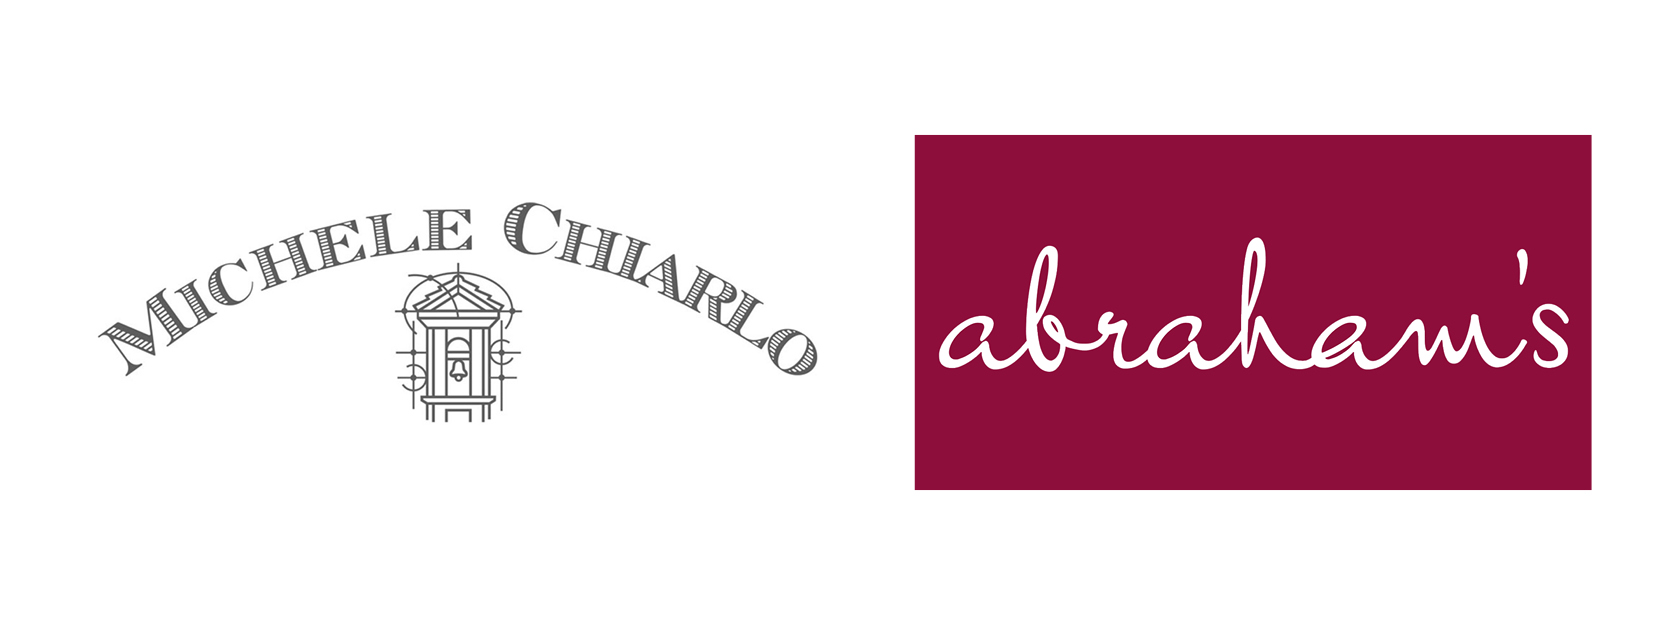 Michele Chiarlo and Abraham's